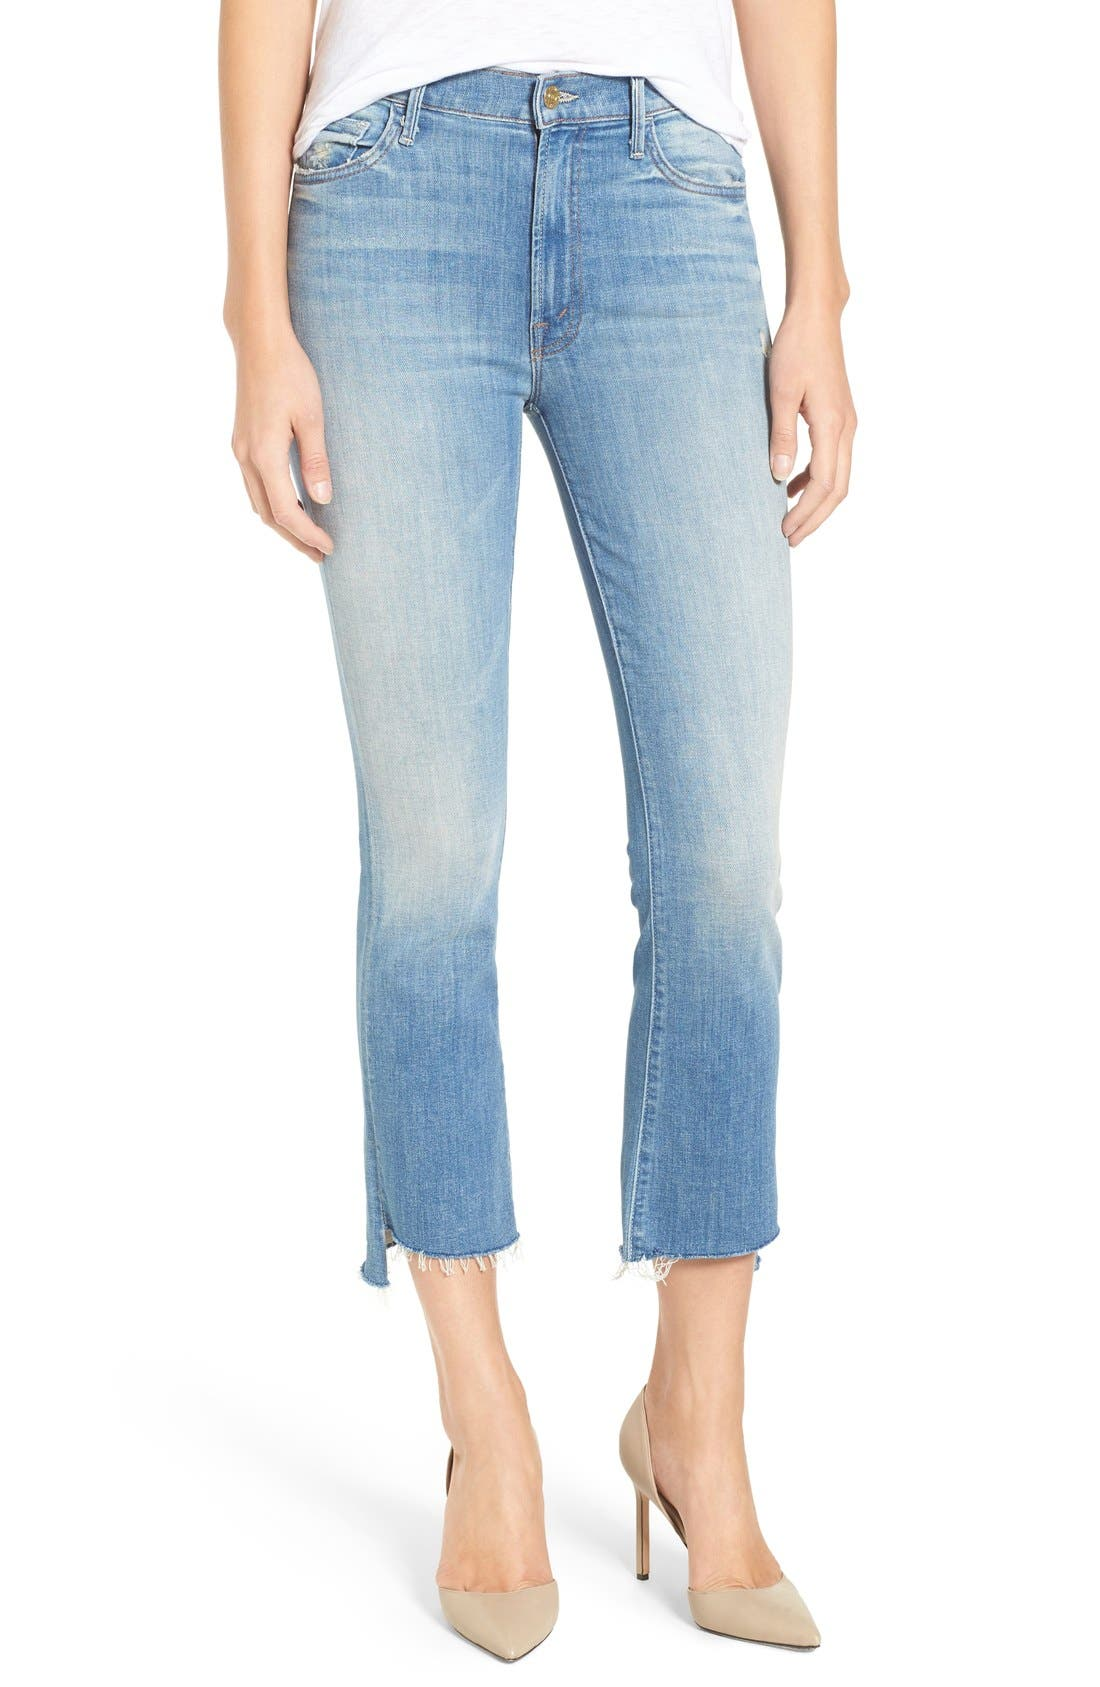 'The Insider' Crop Step Fray Jeans,                         Main,                         color, SHAKE WELL